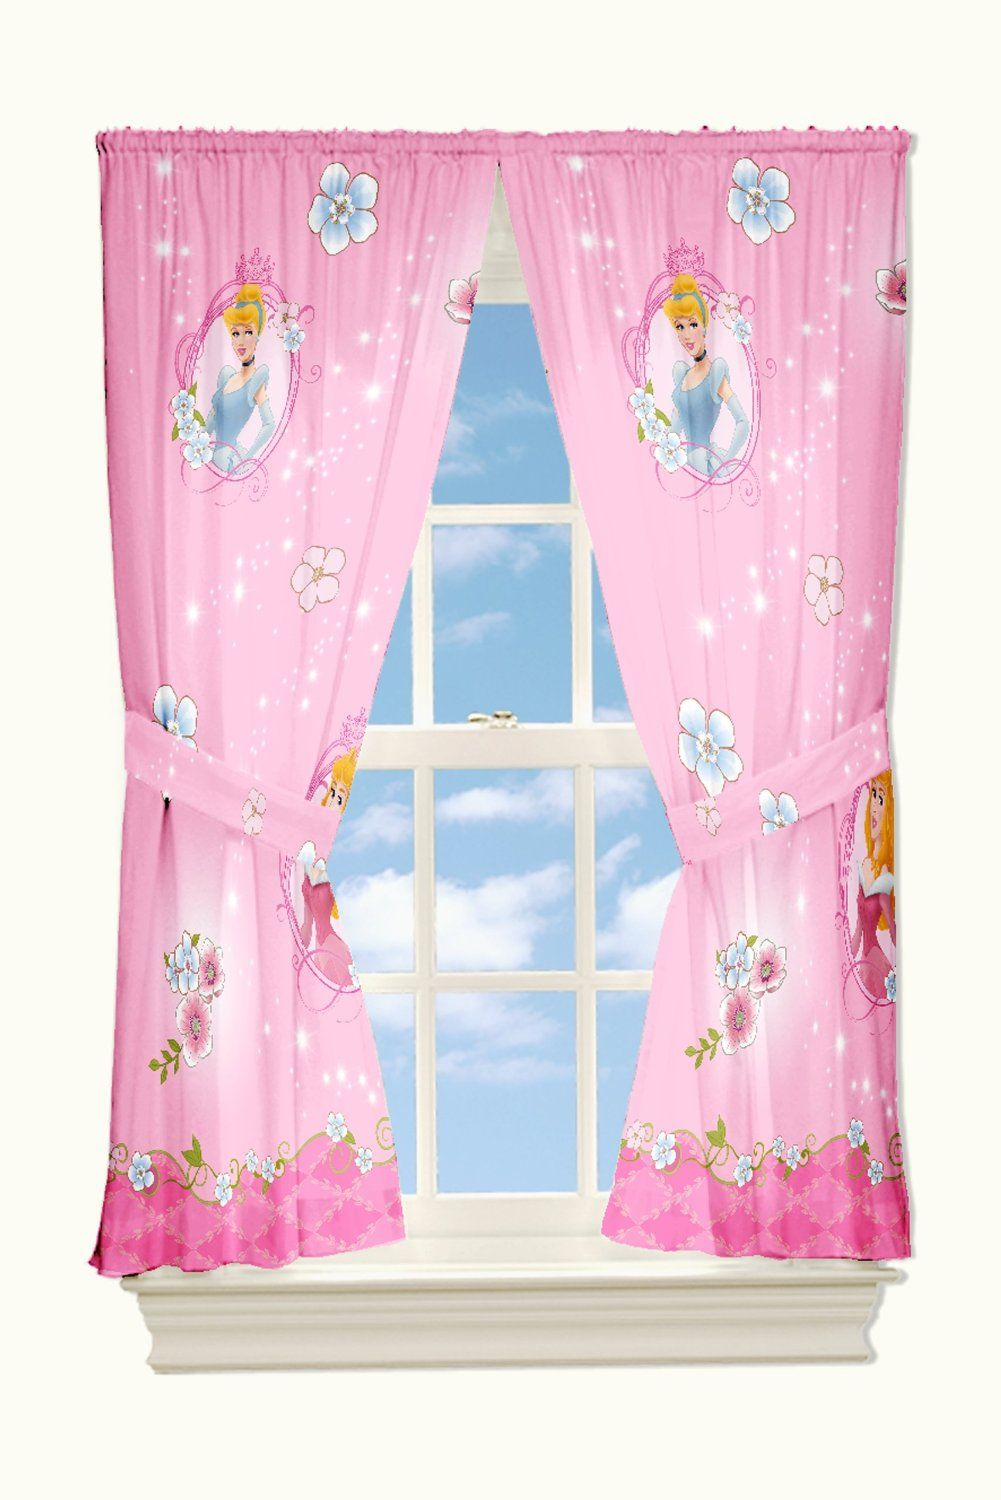 Kids Bedroom Curtain Sweet Pink Bedroom Curtains For Girls Bedroom Accessories Lovely